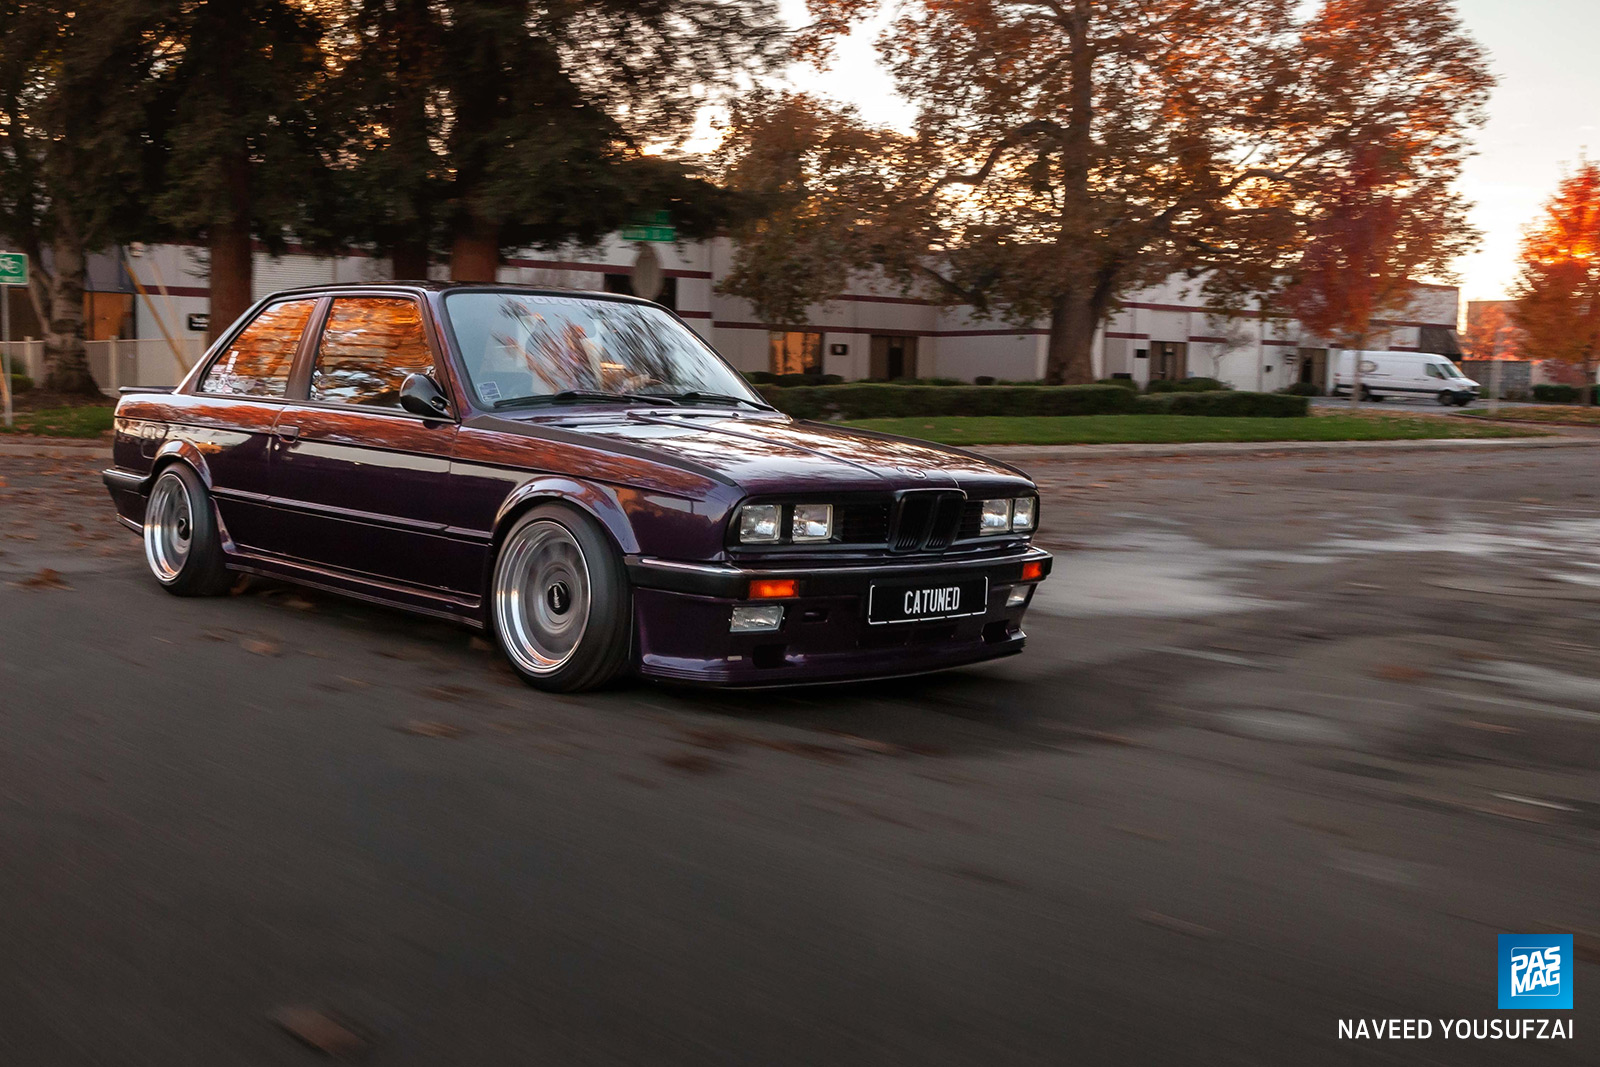 2018 PAS152 DecJan CAtuned Grape BMW E30 04